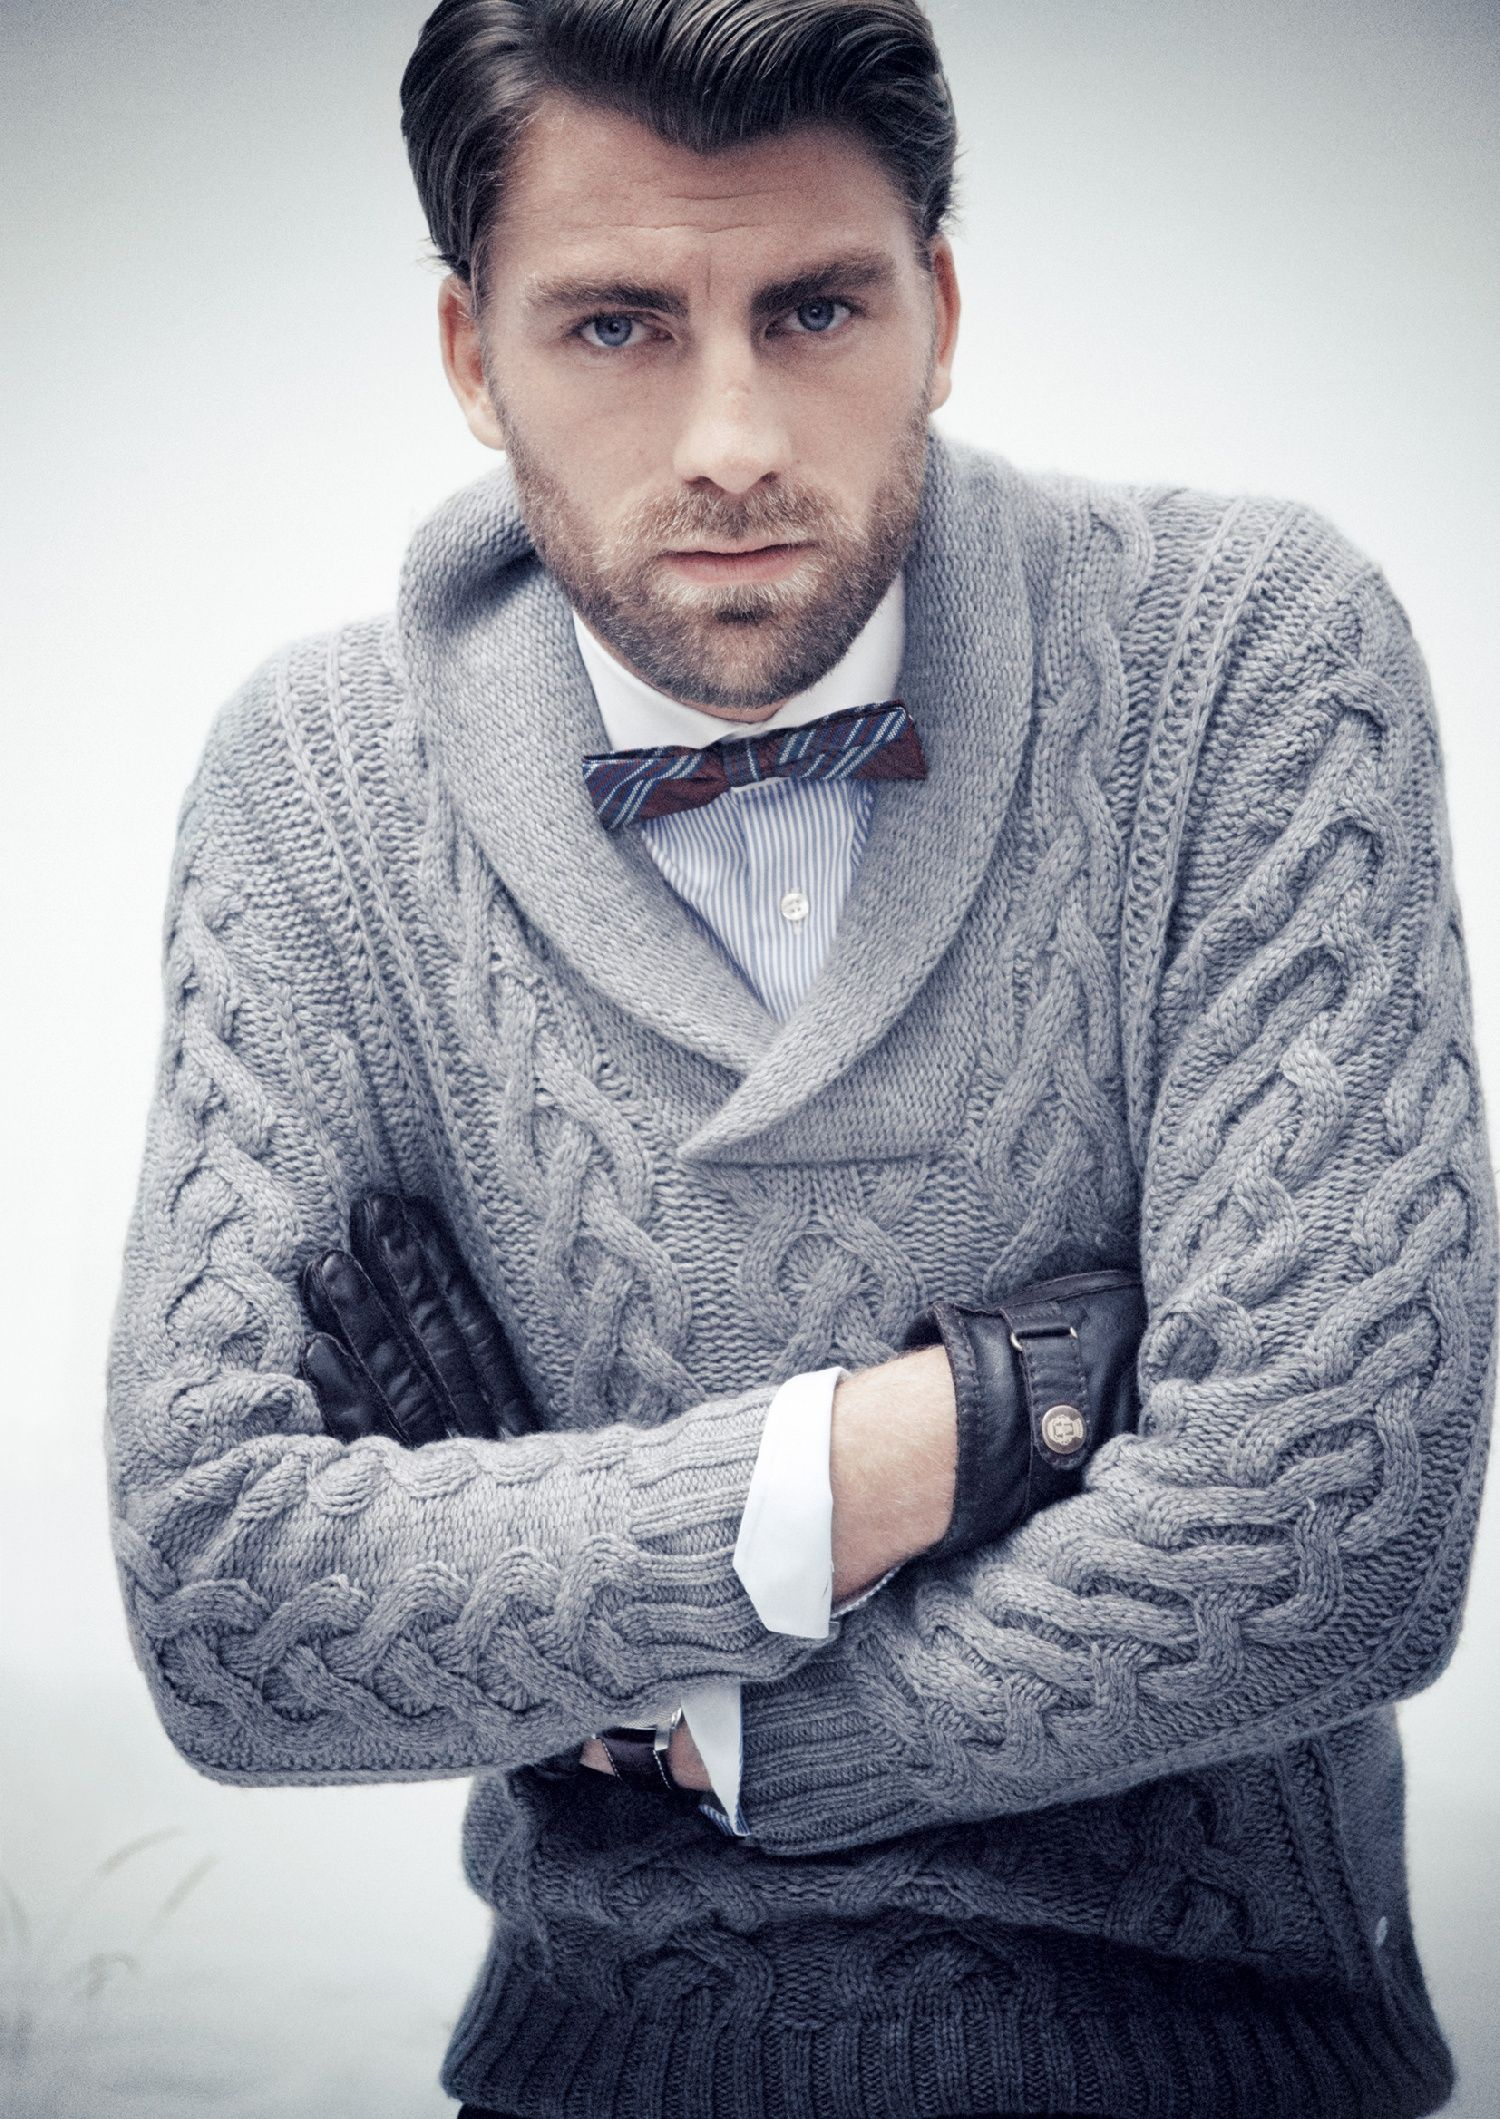 d20390fa60a Calle Strand in a cowl neck sweater   bow tie. These are a few of my  favorite things